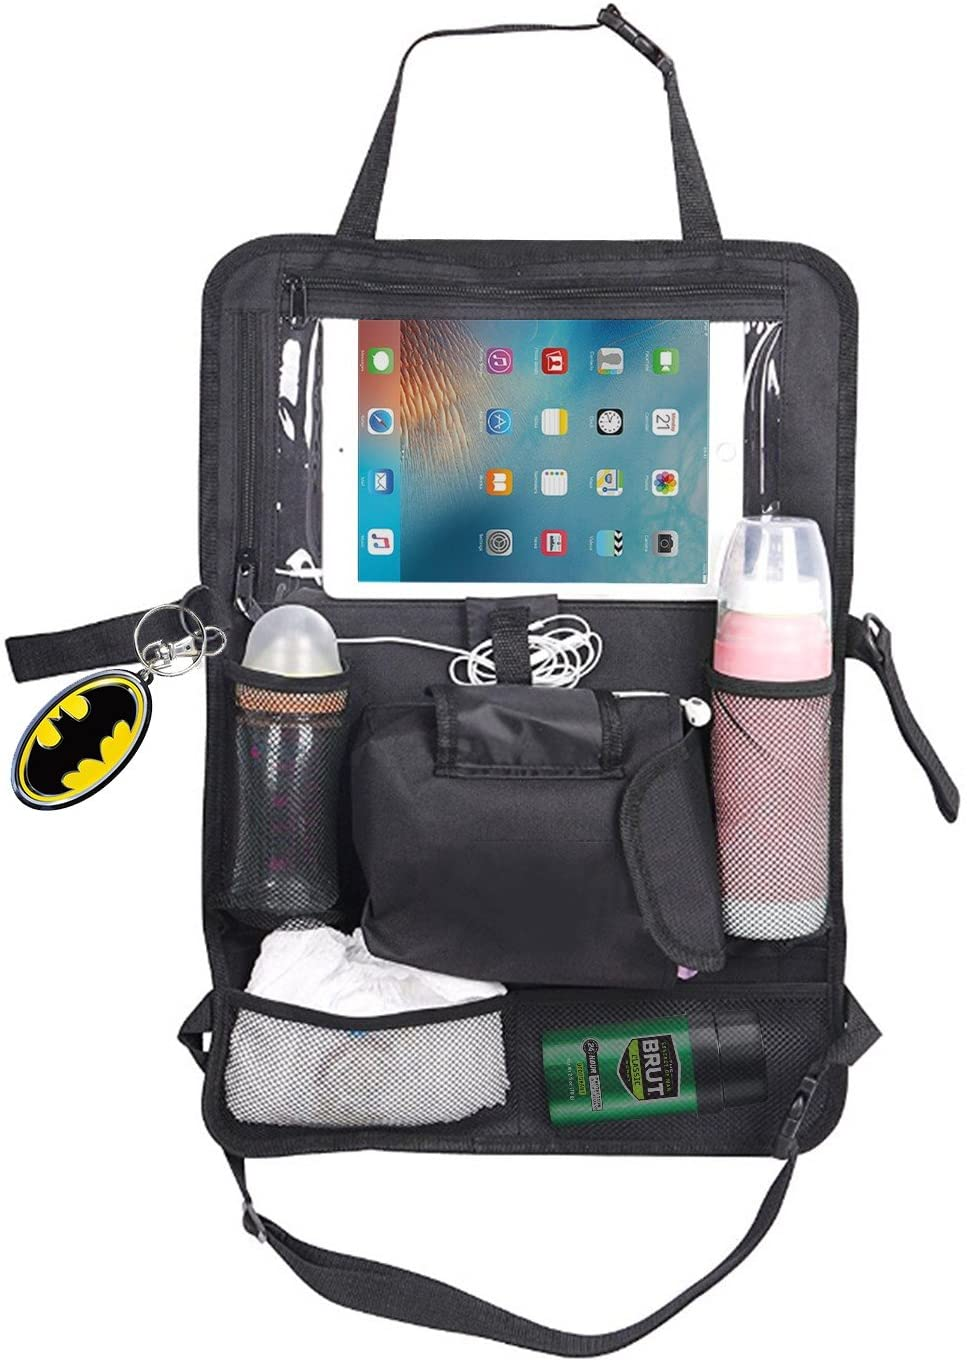 Prorighty Multi-Purpose Car Back Seat Organizer for Seat Protection with 12 Pockets for Storage| Tablet or iPAD Holder-Great for Car Trips</b>